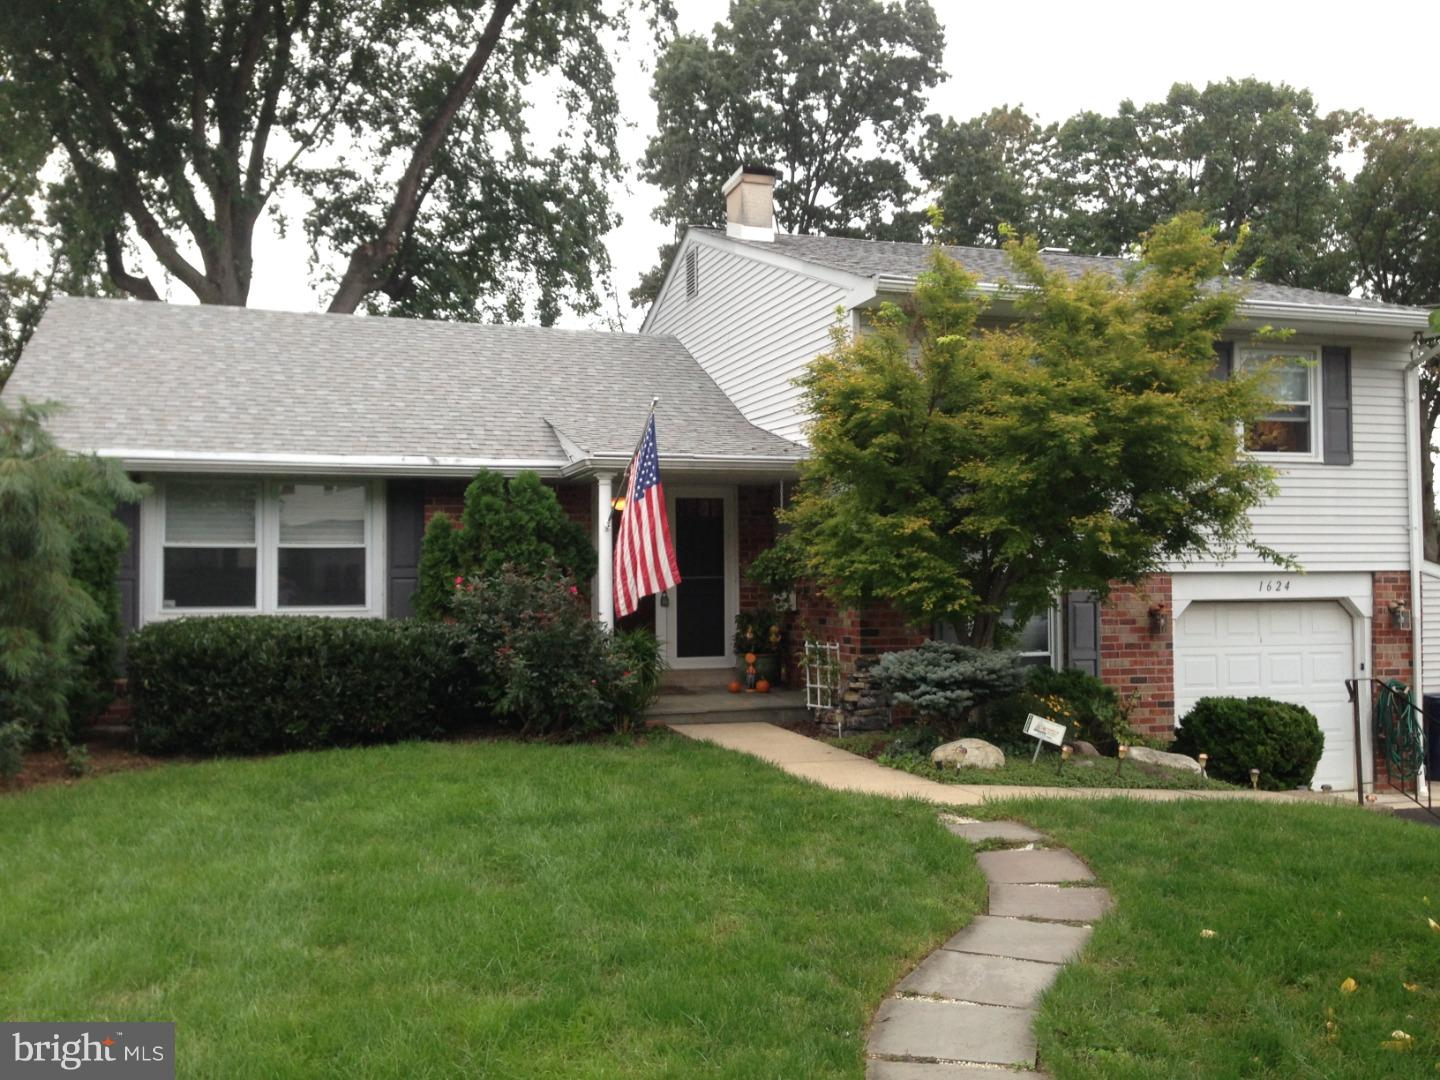 1624 JILL ROAD, WILLOW GROVE, PA 19090